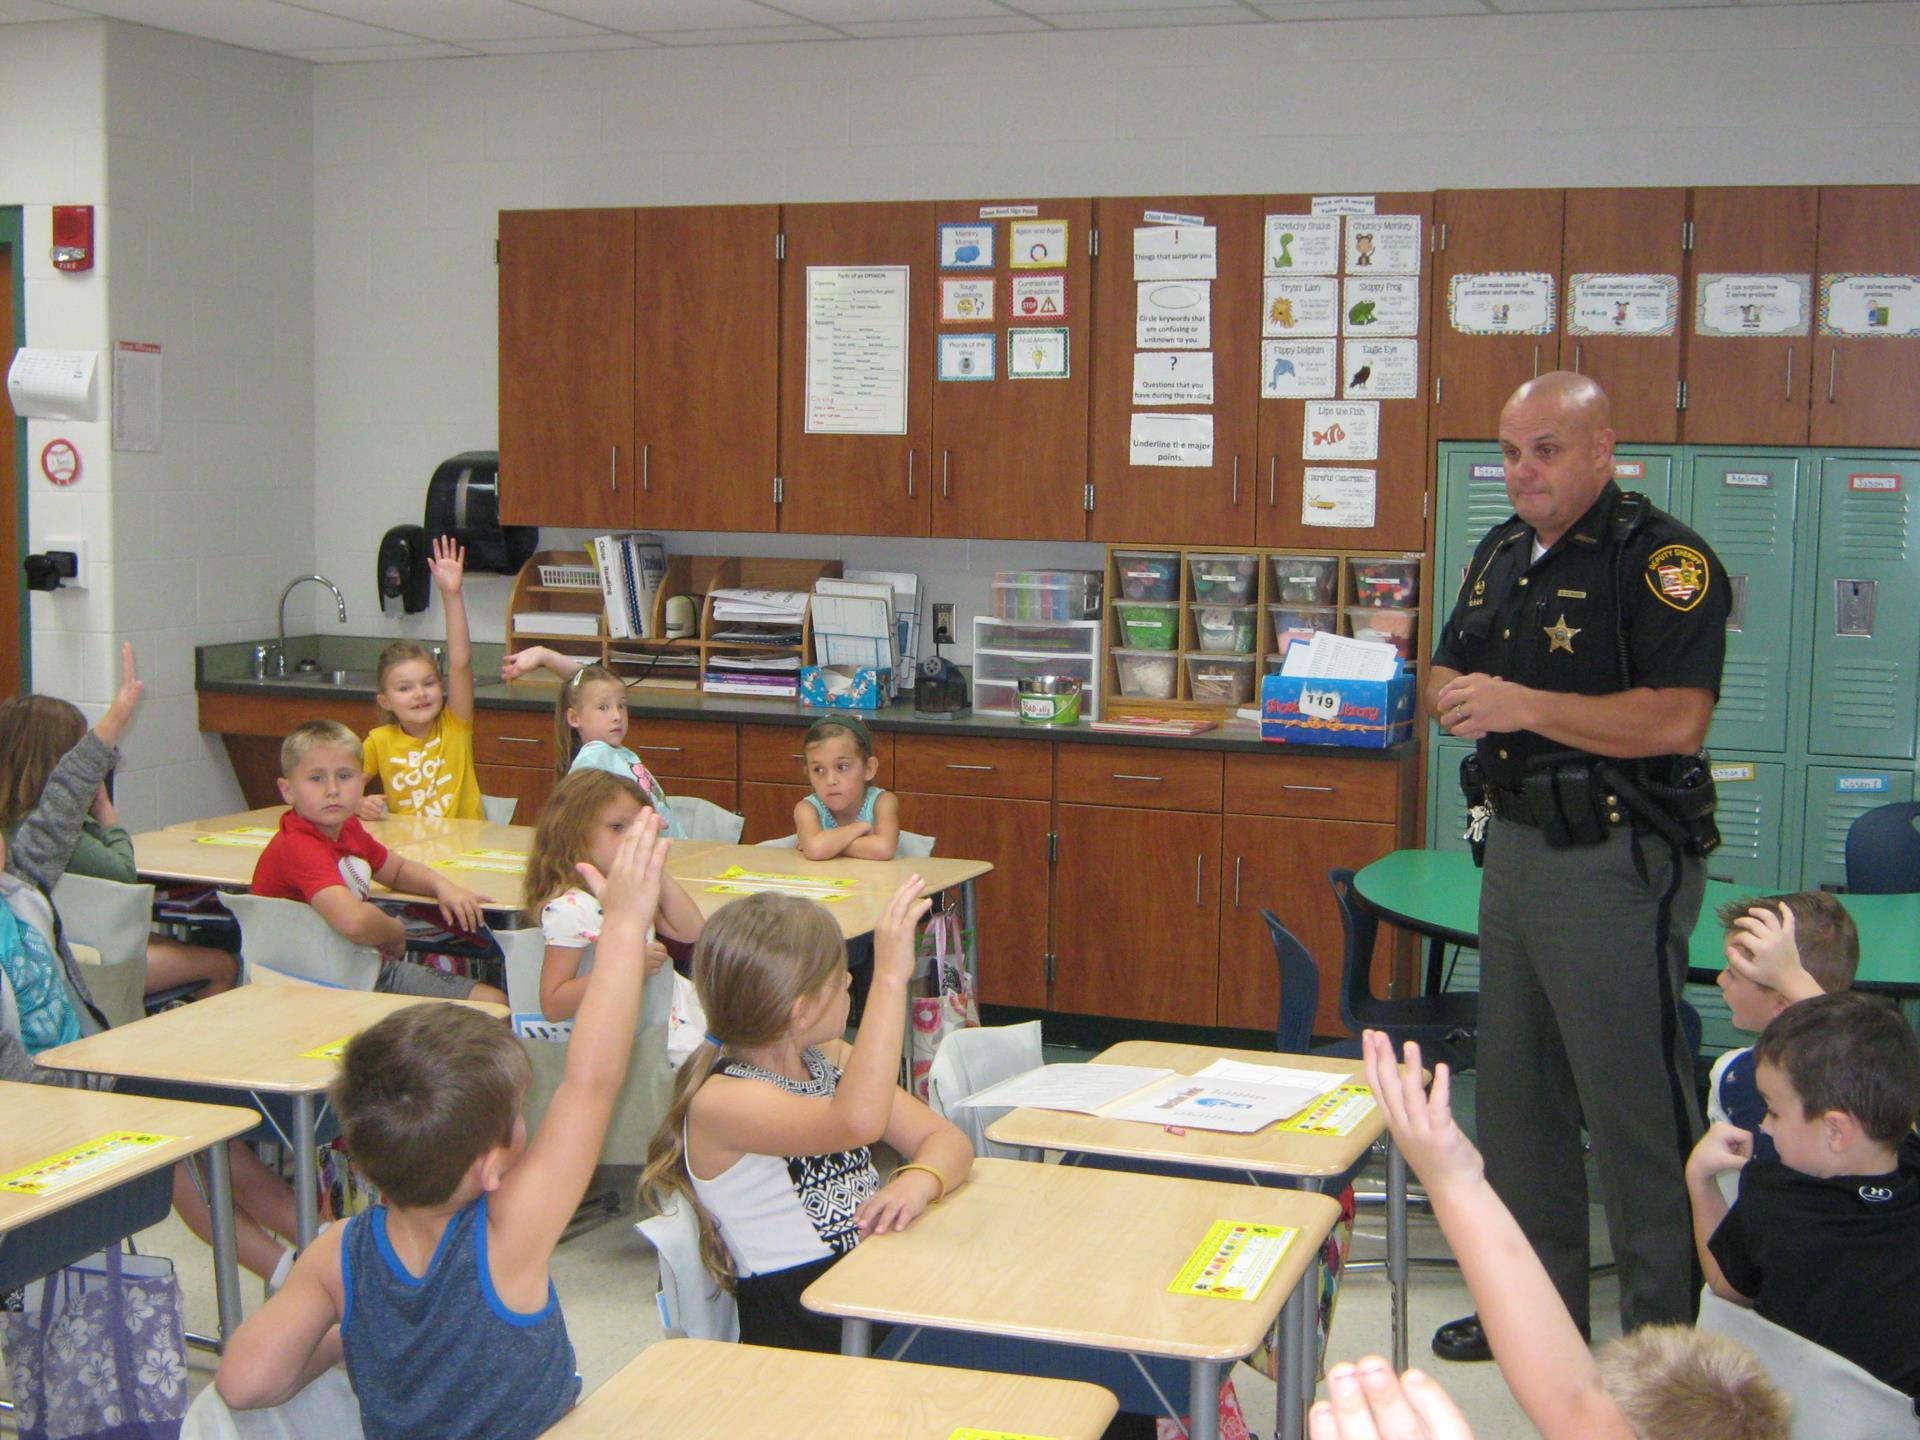 Deputy Rarey answers questions from Mrs. Neal's class